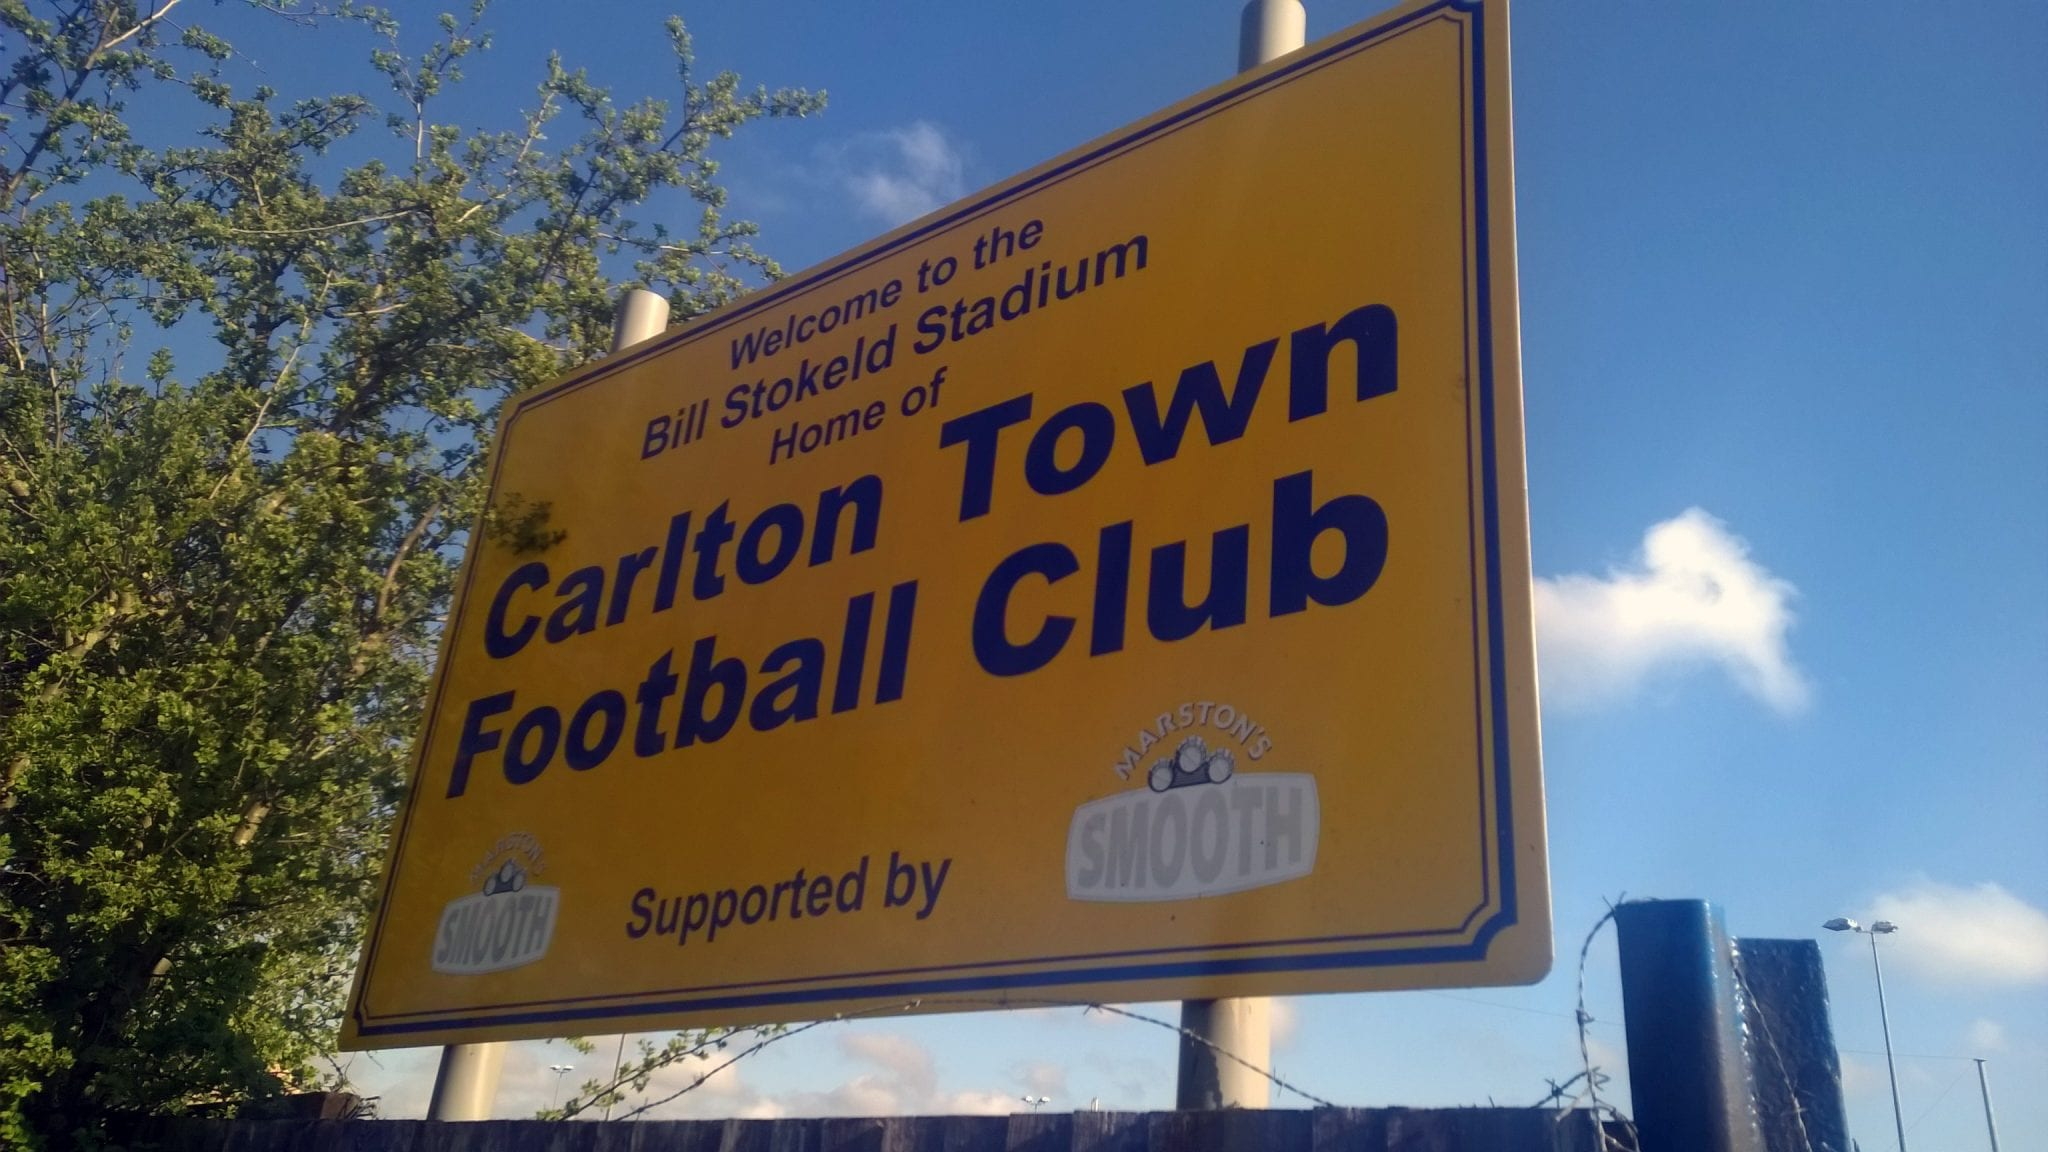 https://www.gedlingeye.co.uk/wp-content/uploads/2015/04/CarltonTown2.jpg